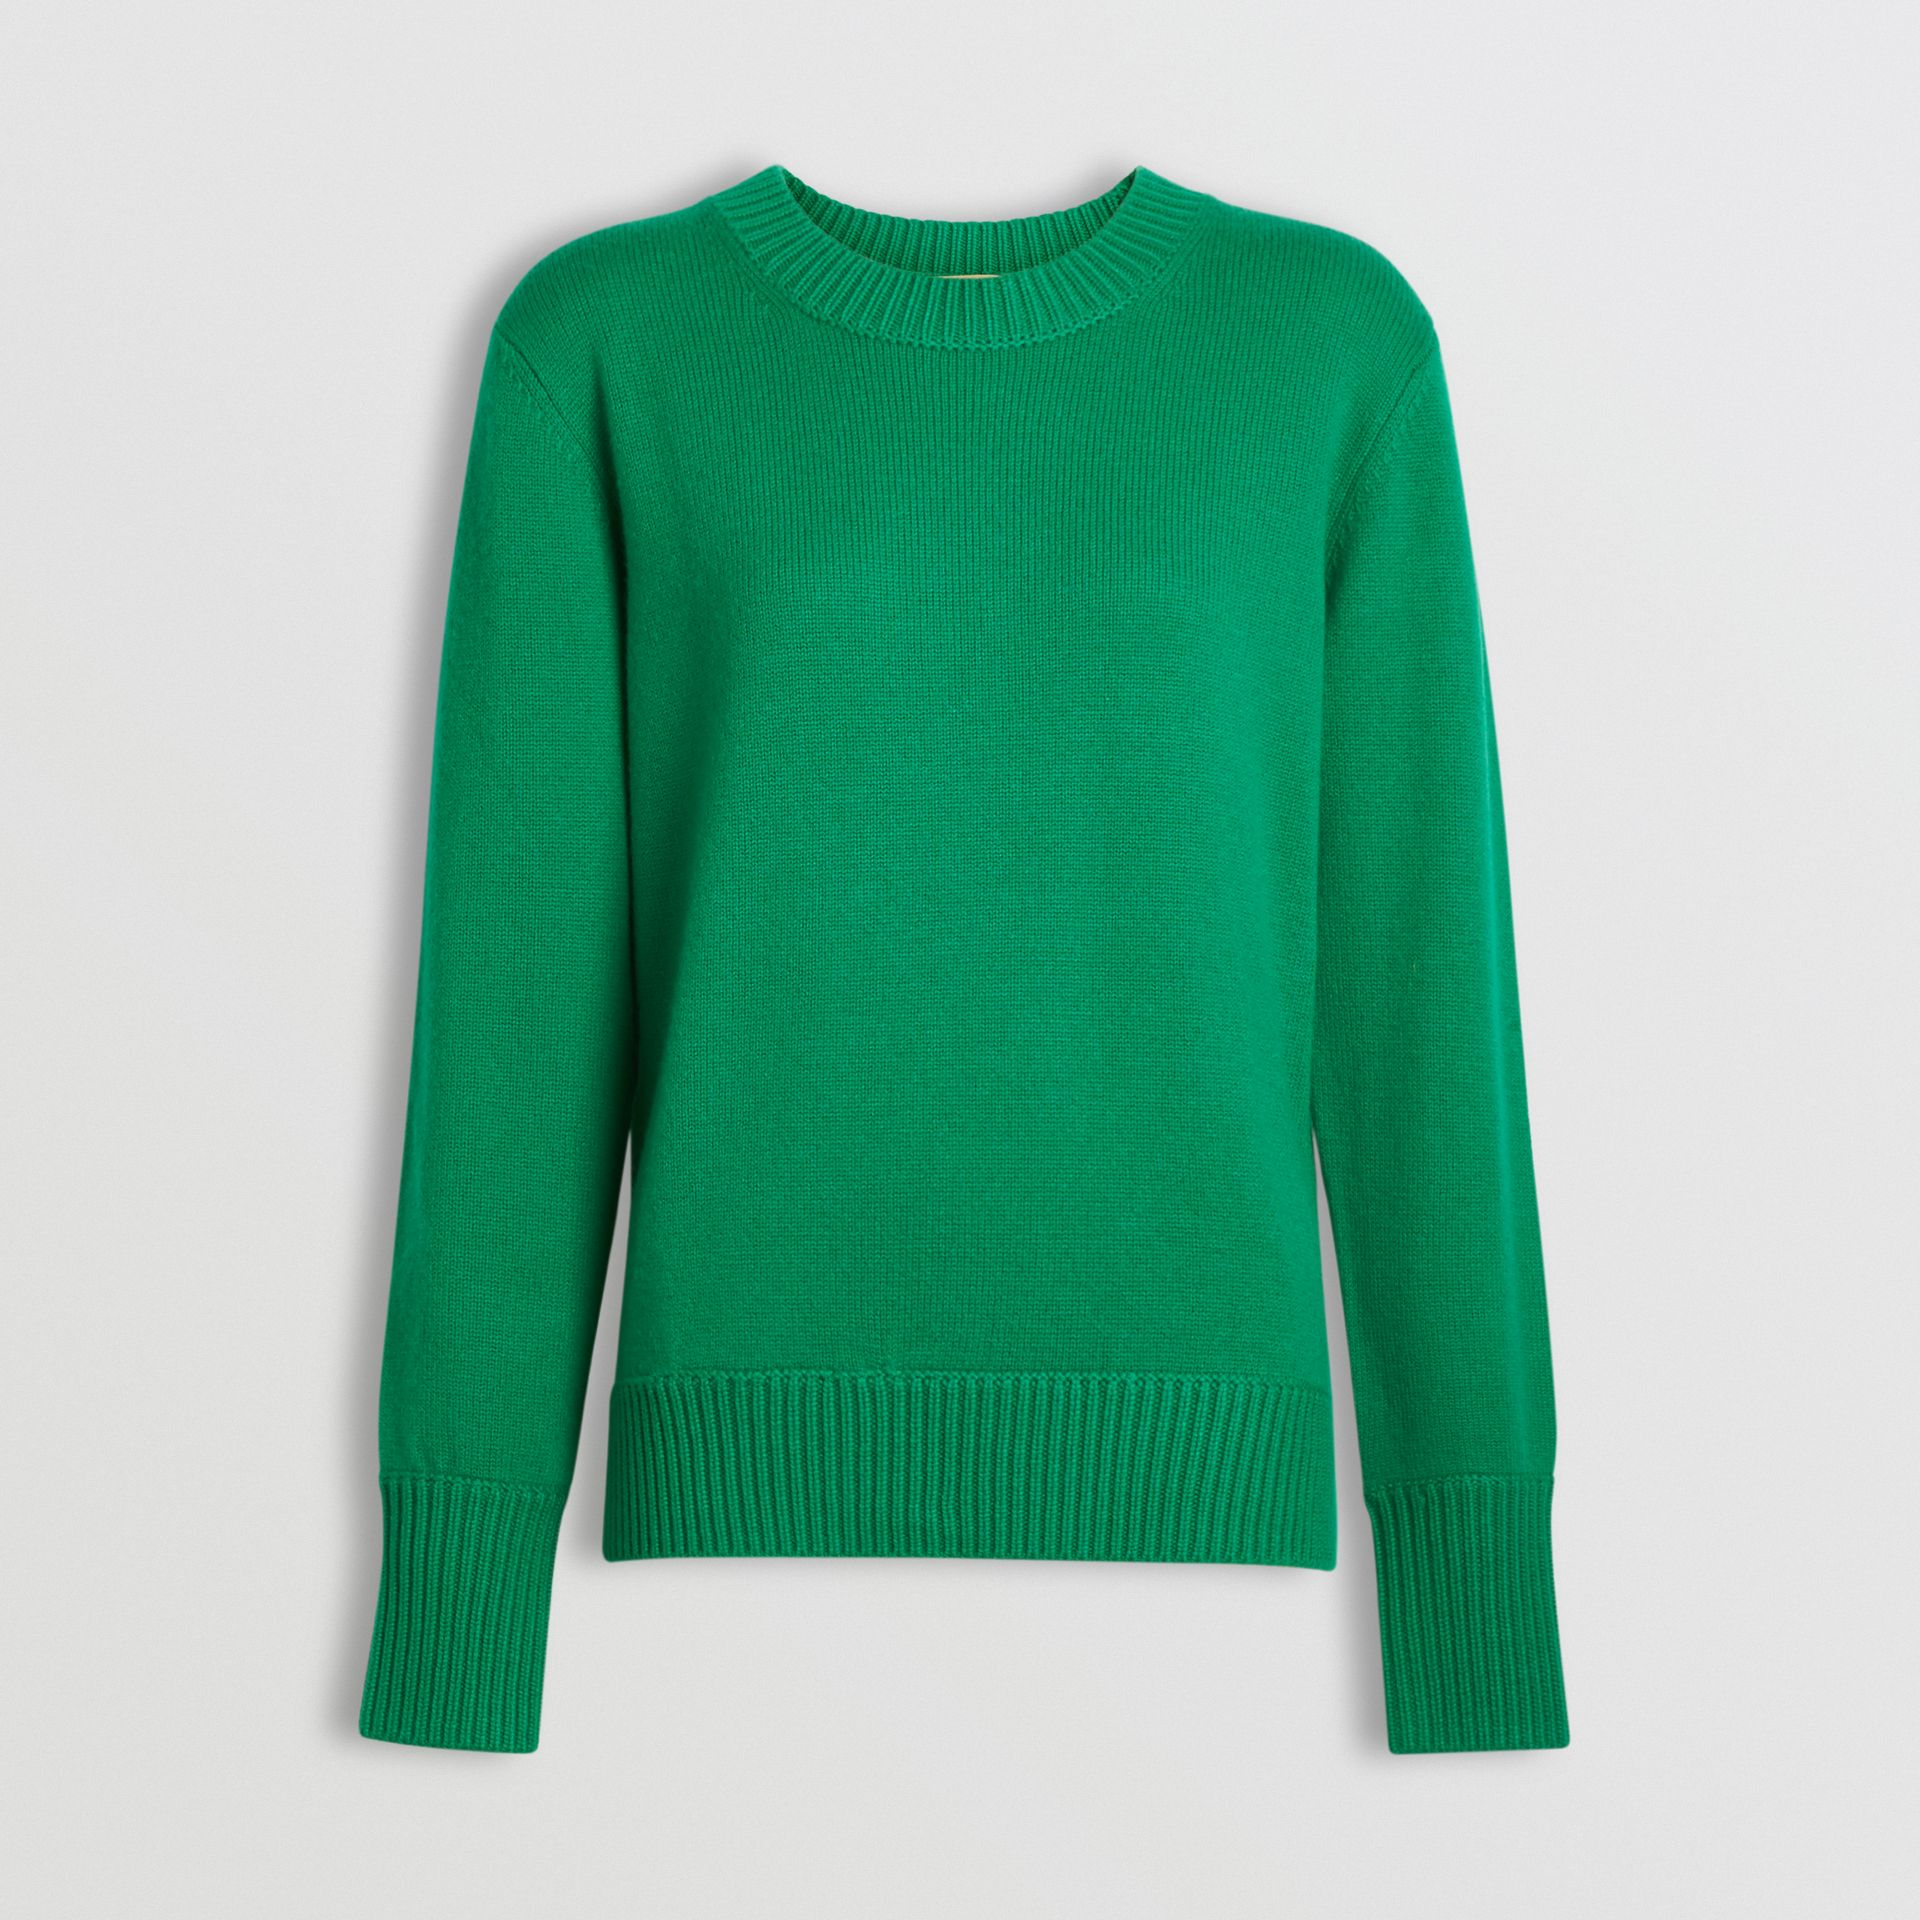 Archive Logo Appliqué Cashmere Sweater in Vibrant Green - Women | Burberry Australia - gallery image 3